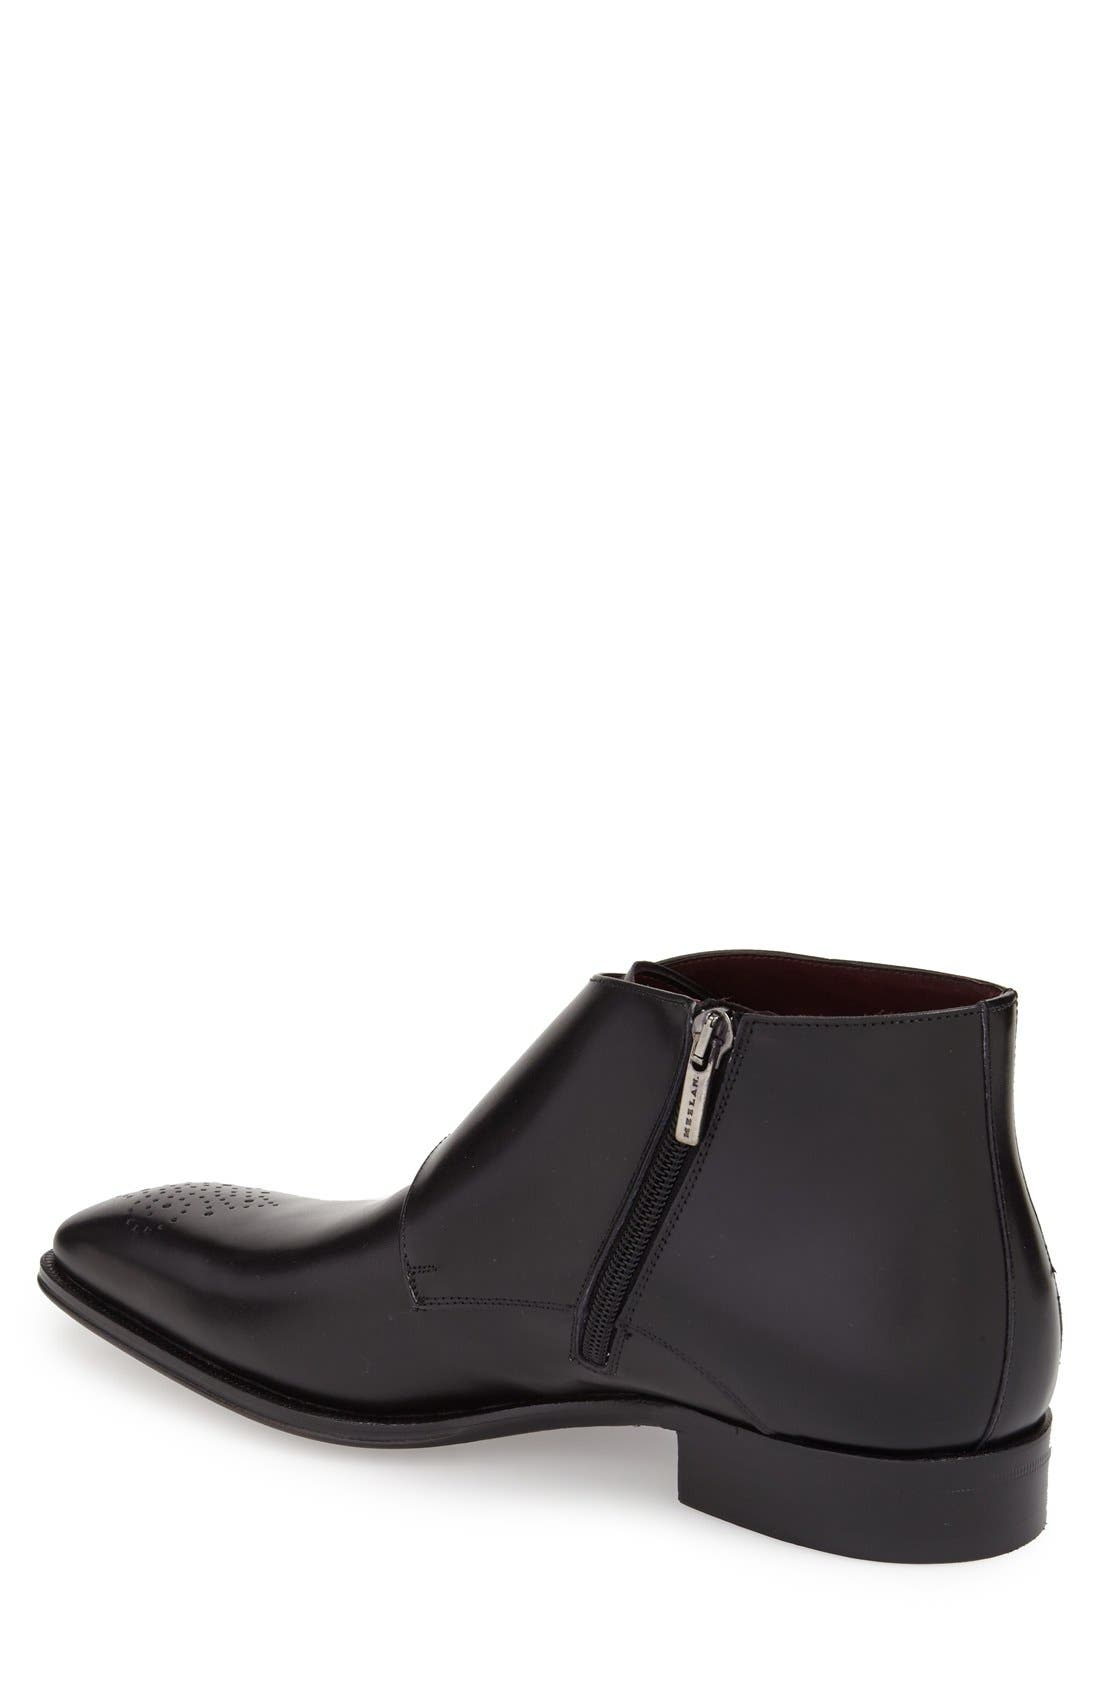 'Rocca' Midi Double Monk Strap Boot,                             Alternate thumbnail 2, color,                             001